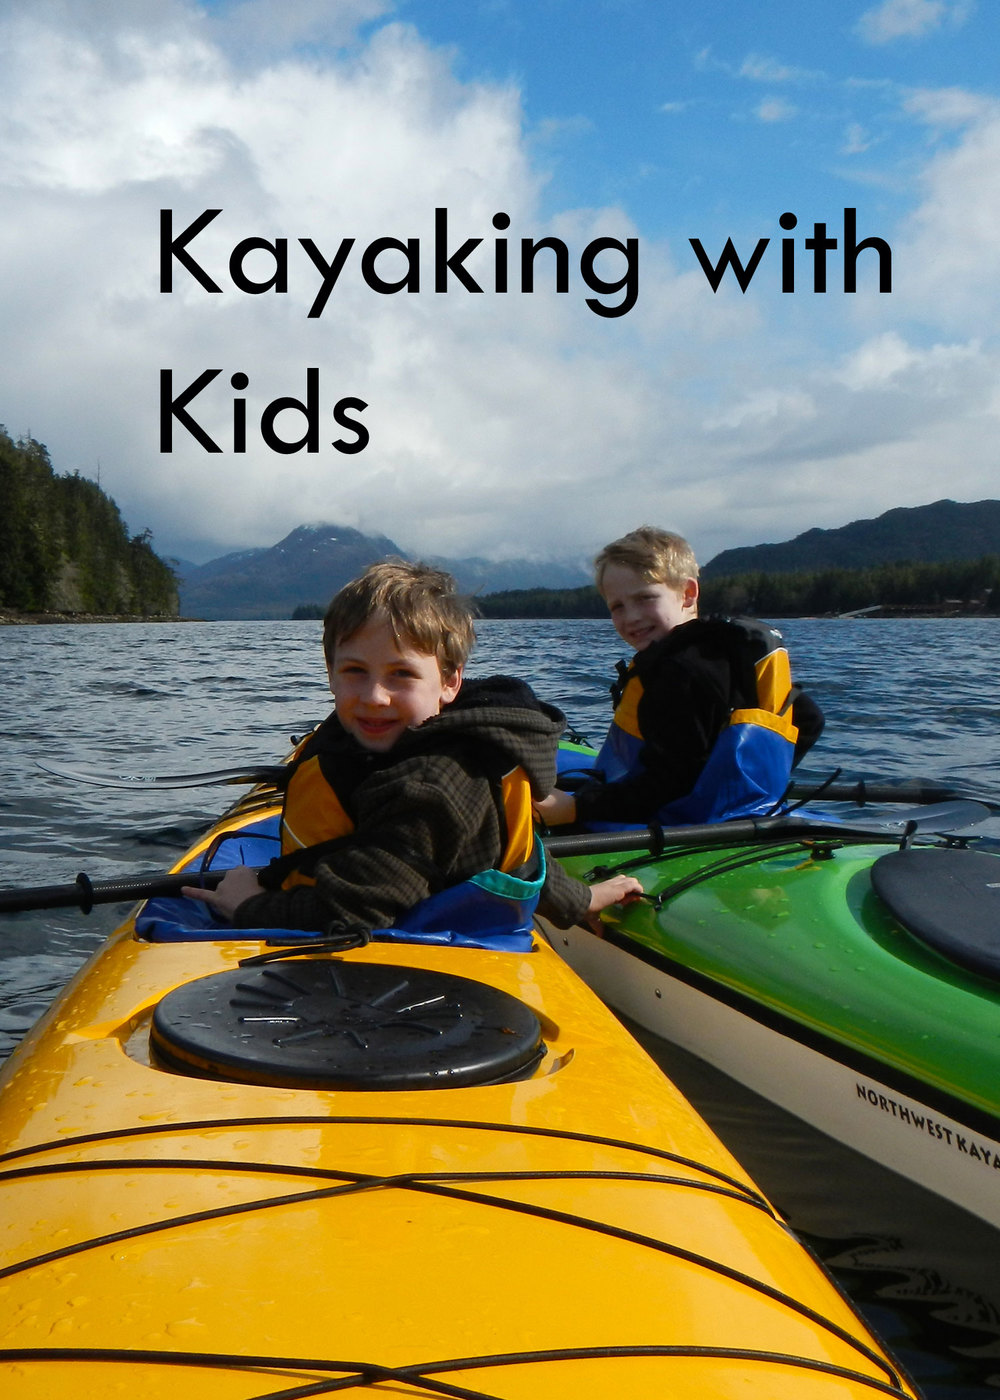 Kids love adventures! Kayaking is a great way to spend quality family time outdoors.